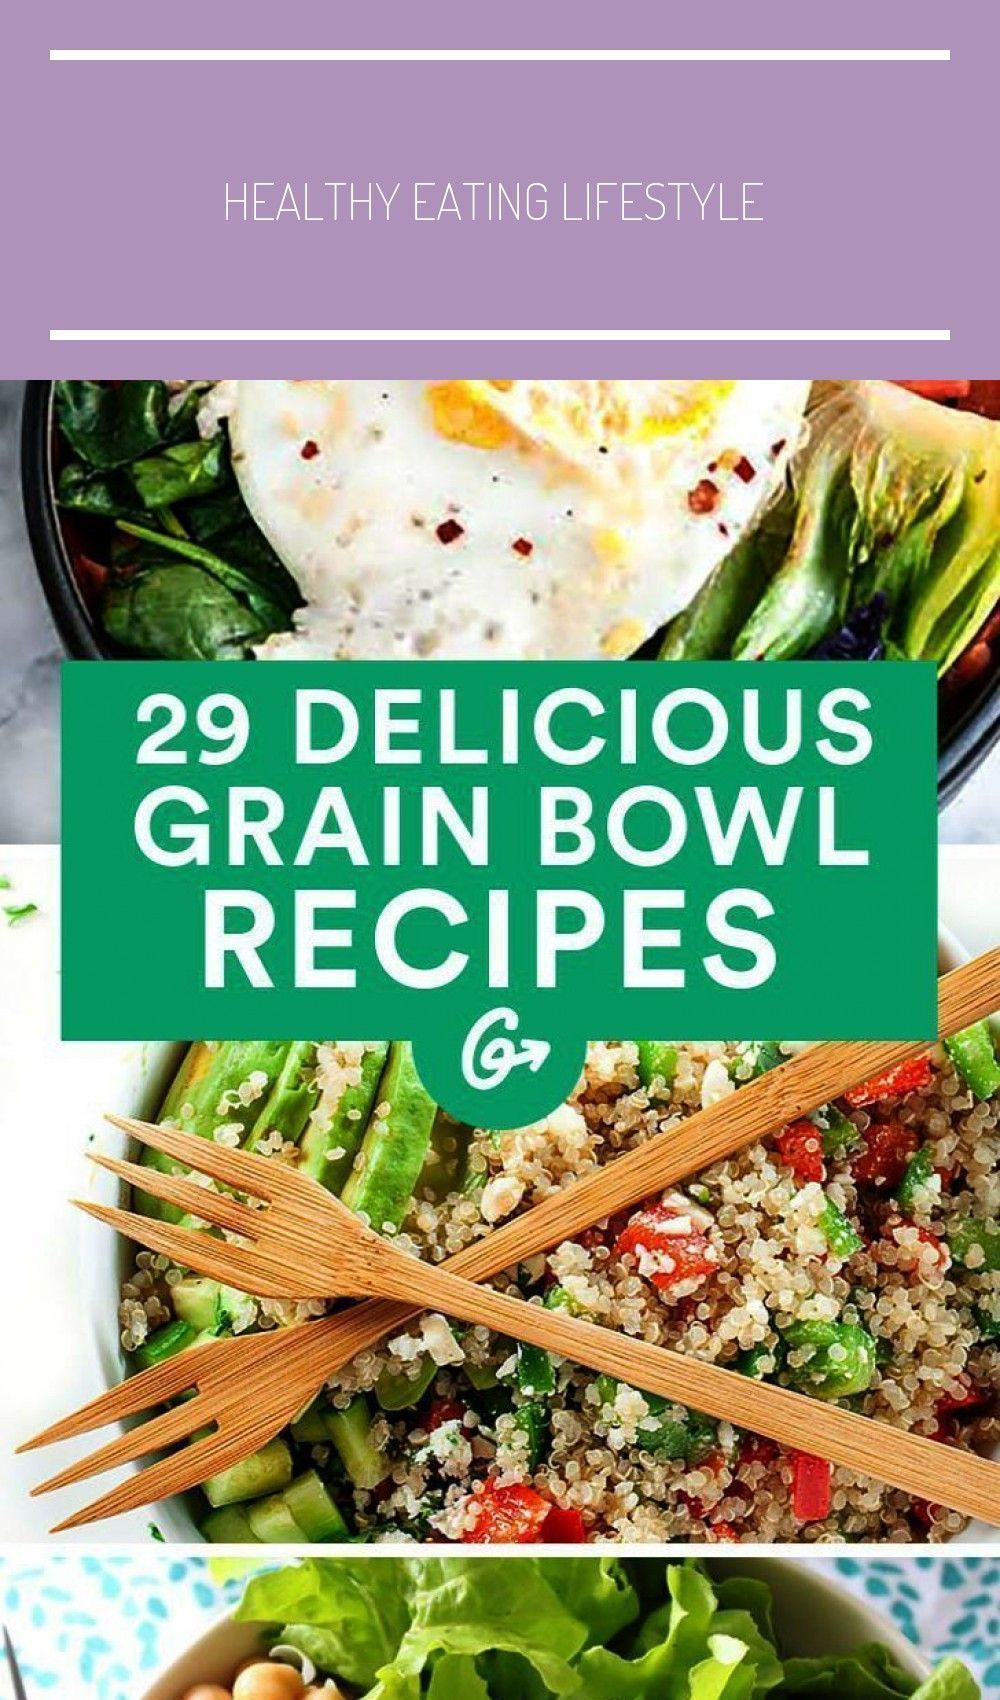 Healthy Eating Lifestyle Quotes though Free Clean Eating Meal Plan Vegetarian en... ,  #Clean... ,  #Clean #detoxplanvegetarian #Eating #free #healthy #Lifestyle #Meal #Plan #Quotes #Vegetarian